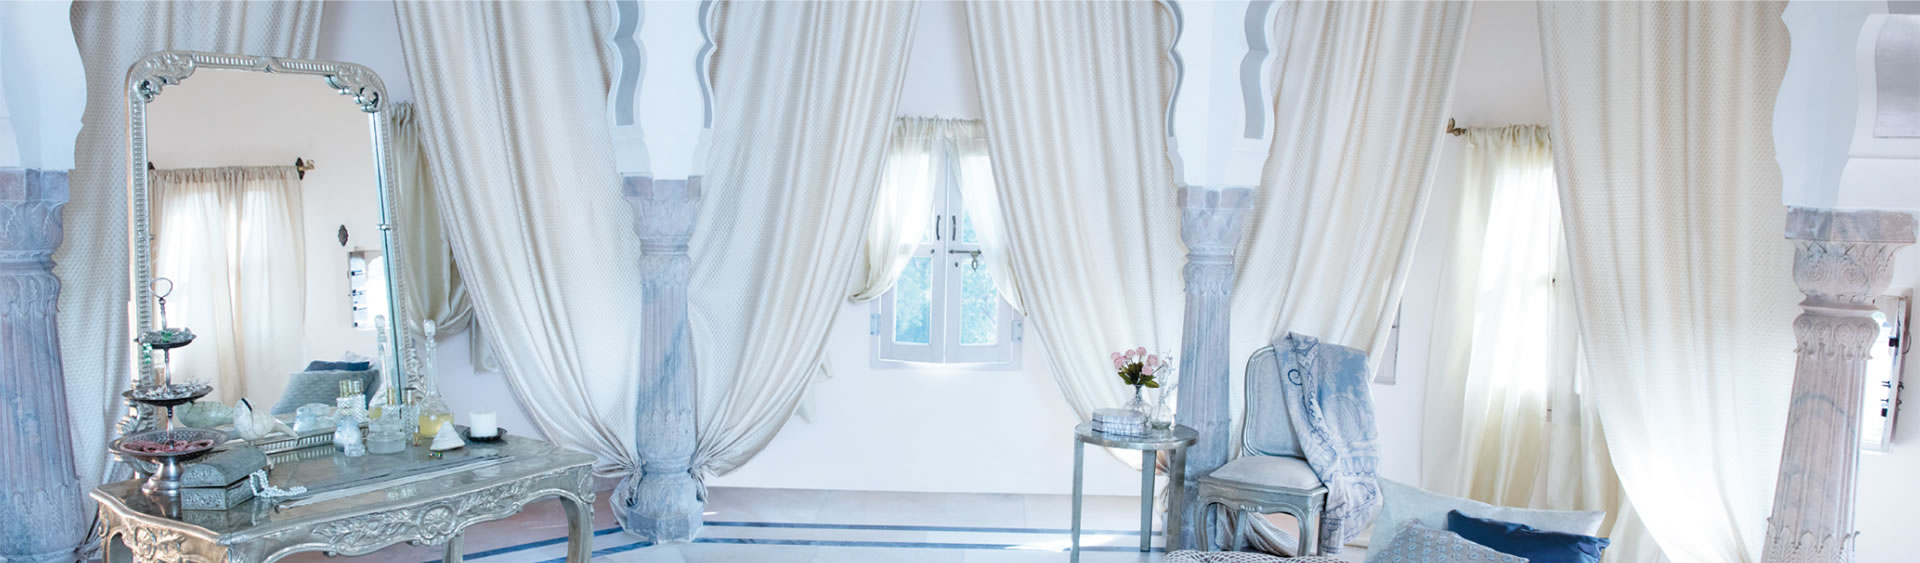 A global luxury home textile brand designed for the discerning.